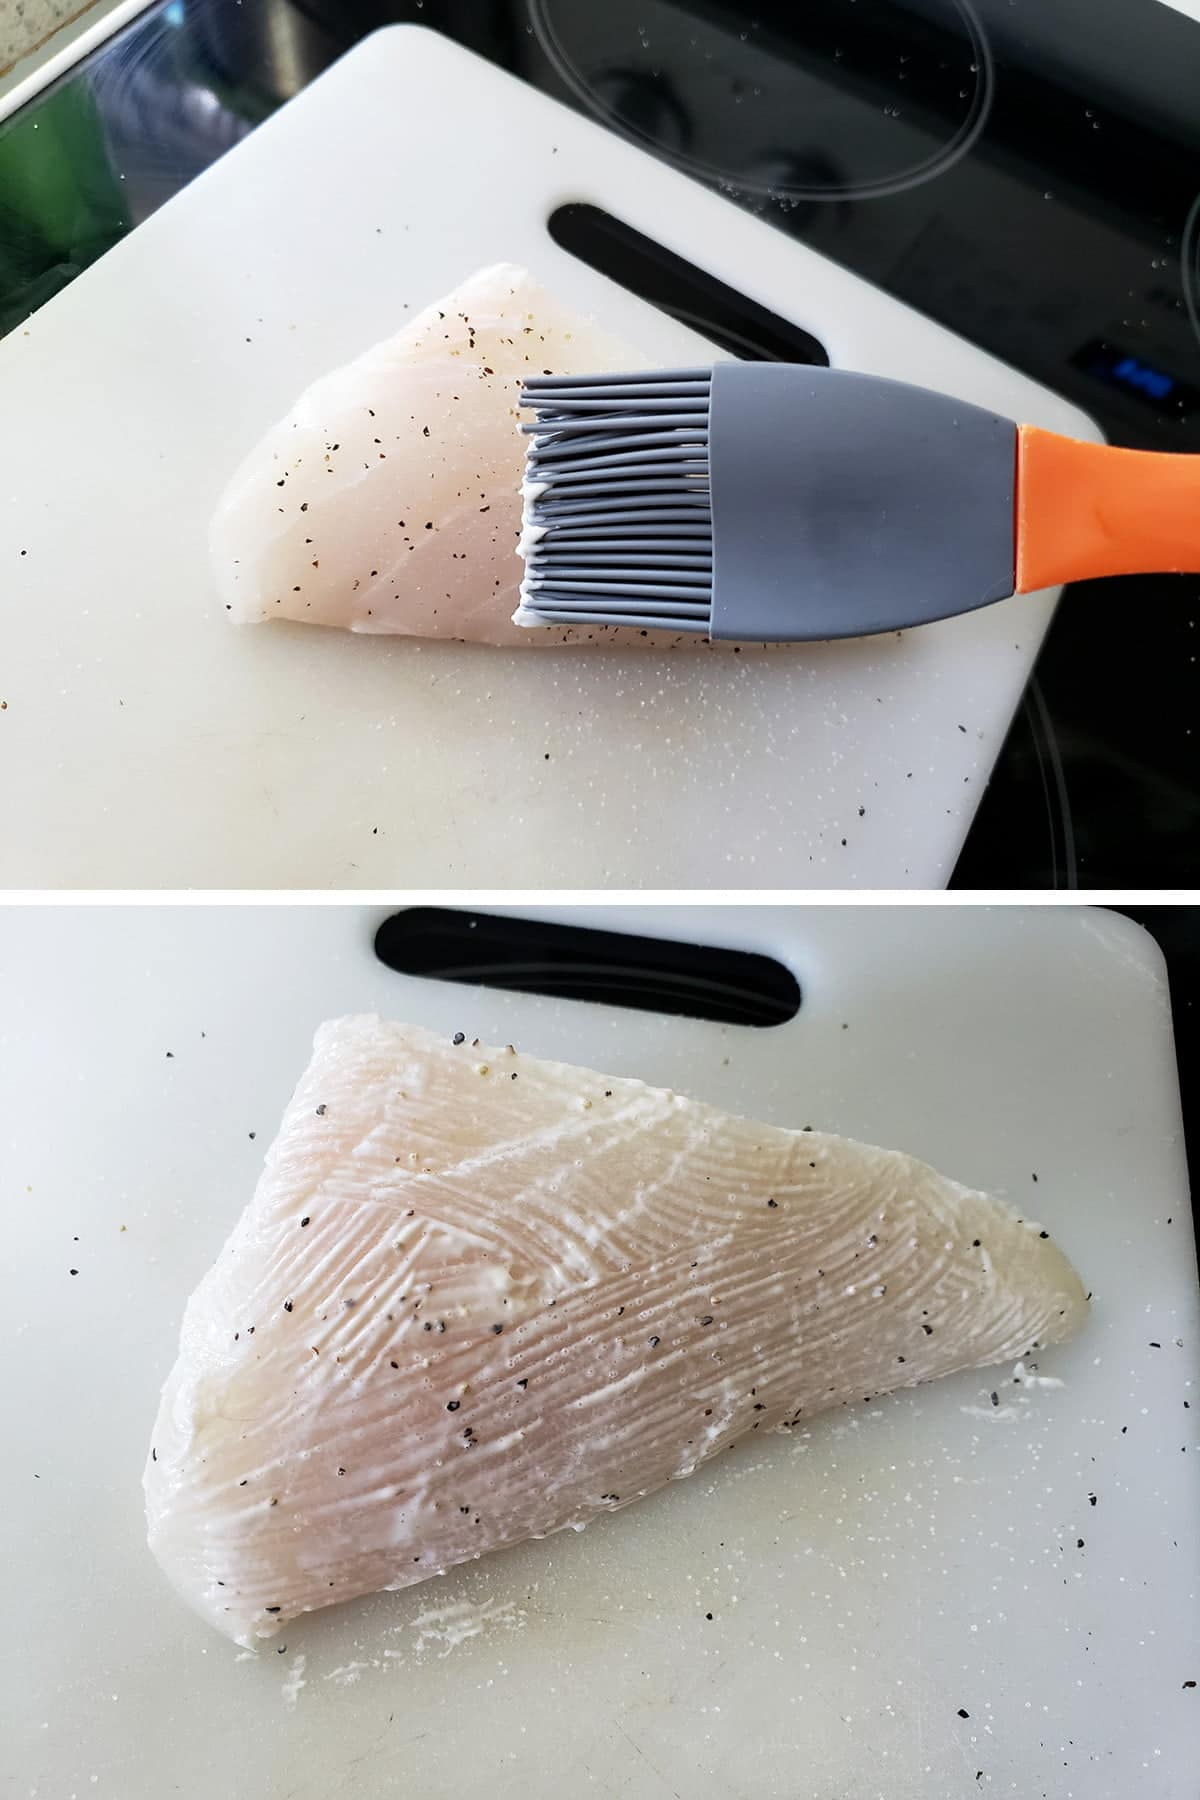 A two part image showing a silicone brush spreading mayo on a halibut steak, and then a halibut steak thinly coated with mayo.